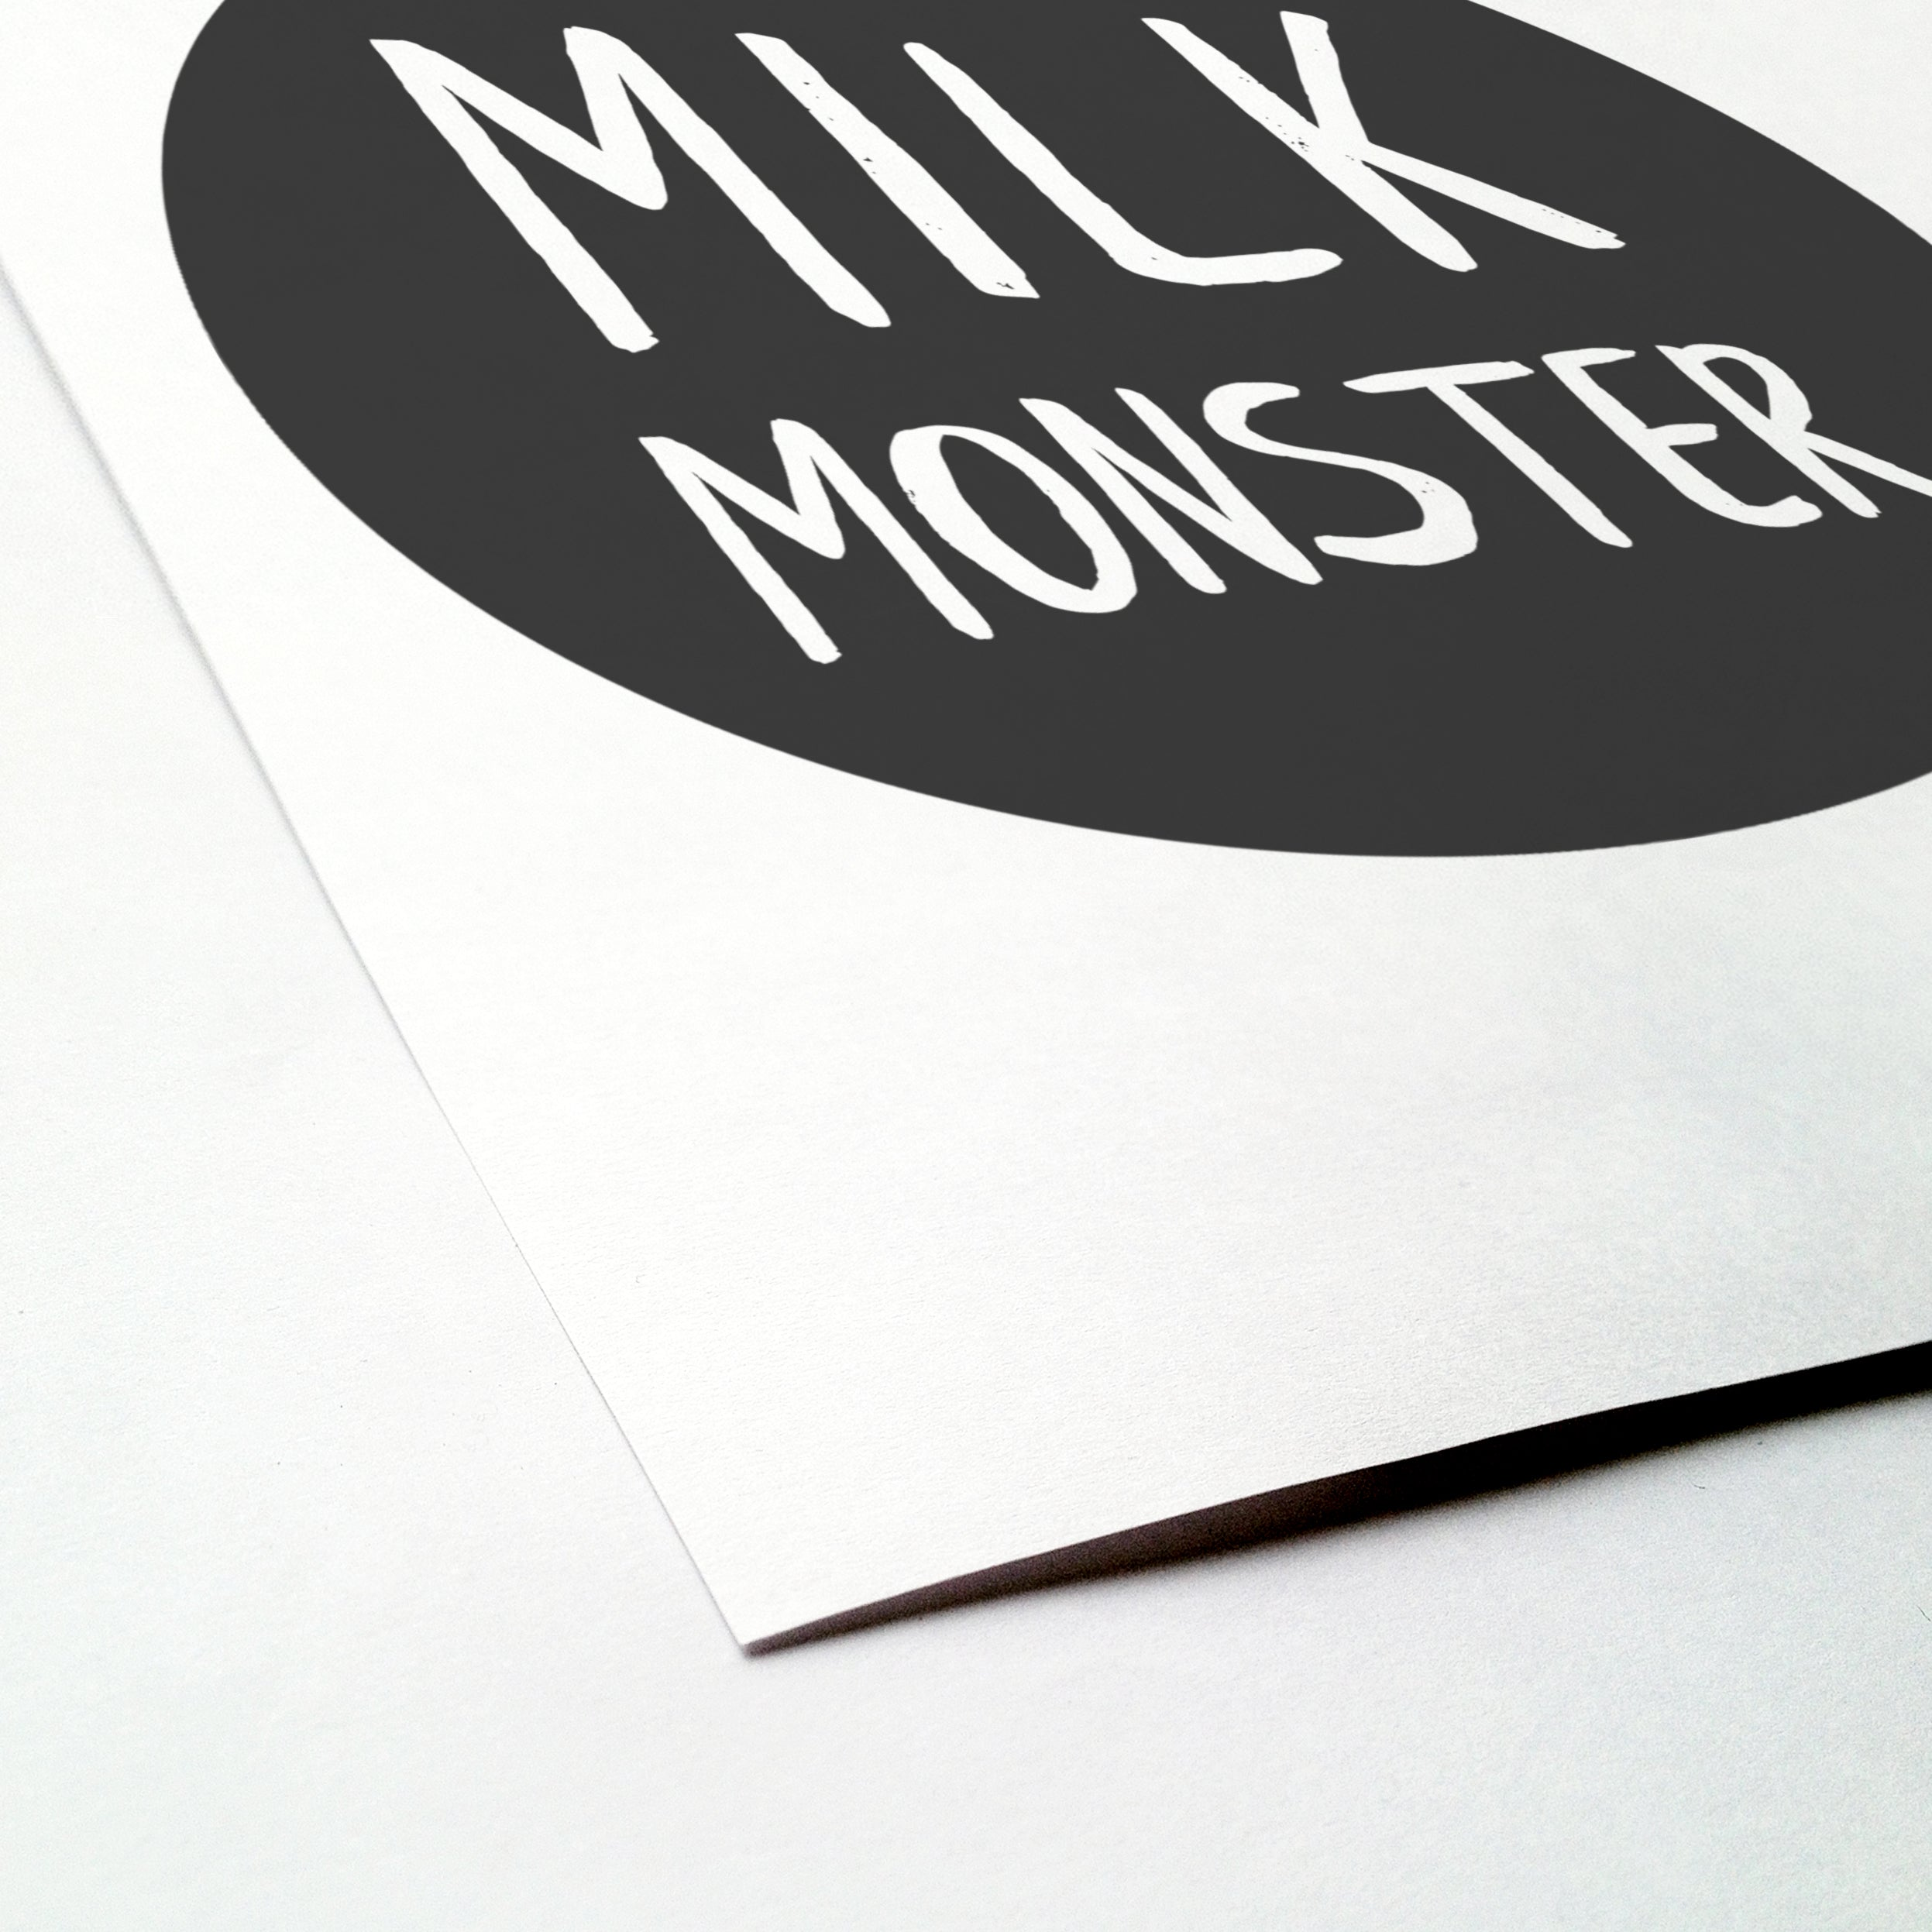 'Milk monster' brush letter monochrome print | ink & white